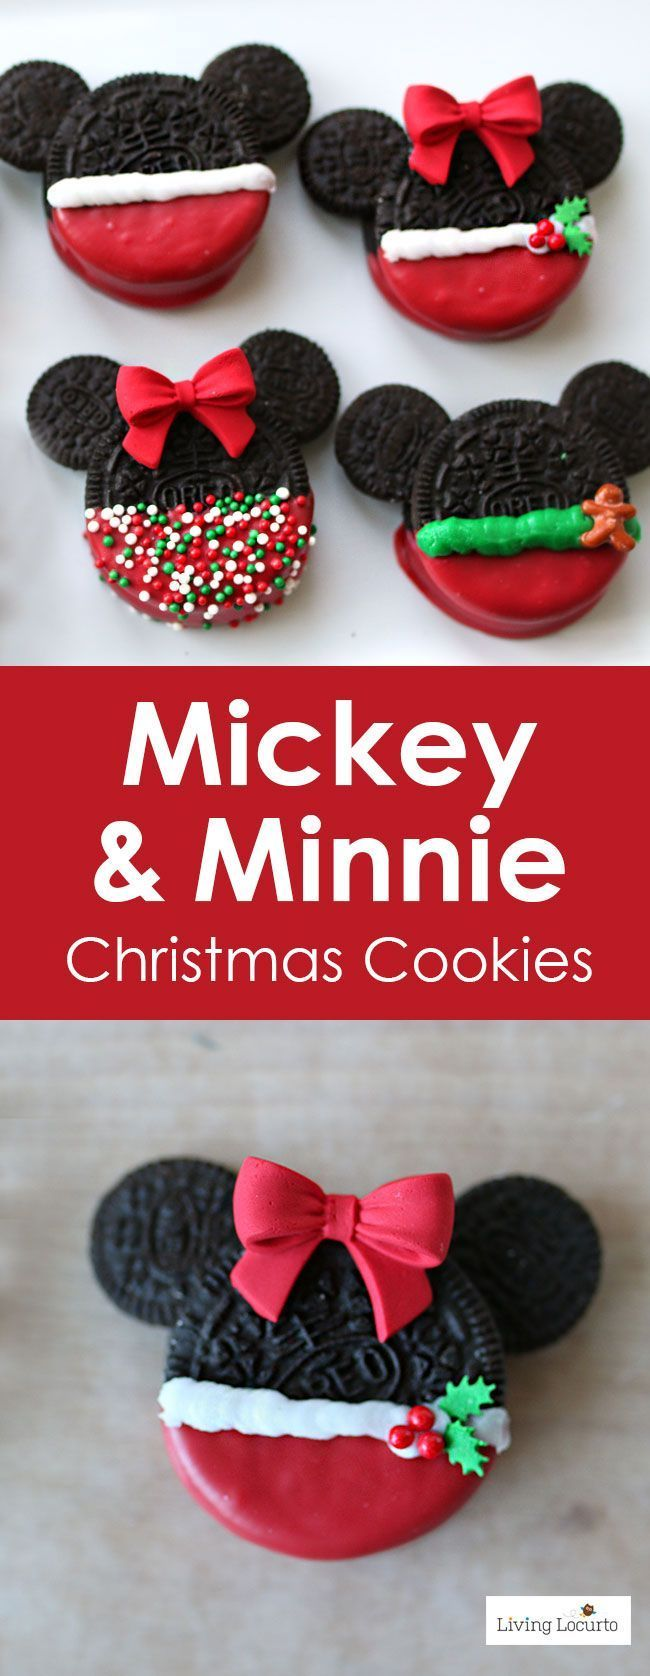 Adorable No Bake Mickey & Minnie Mouse Christmas Cookies made with Oreos. Fun Disney themed holiday cookies for a party, gifts or cookie exchange. #disney #christmas